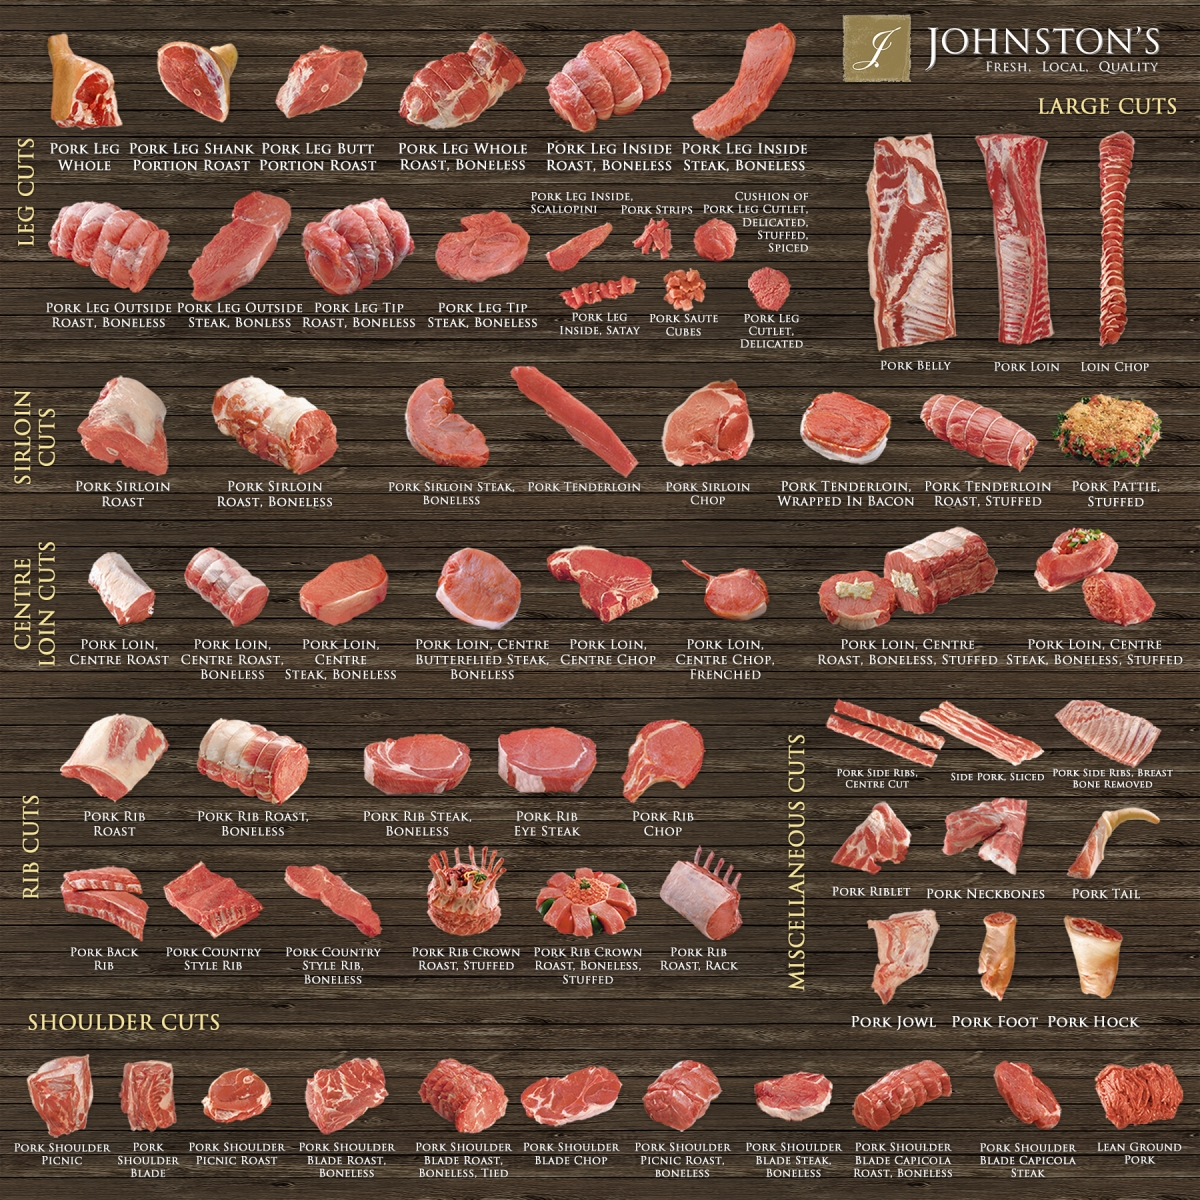 Johnston's Pork Cut Chart